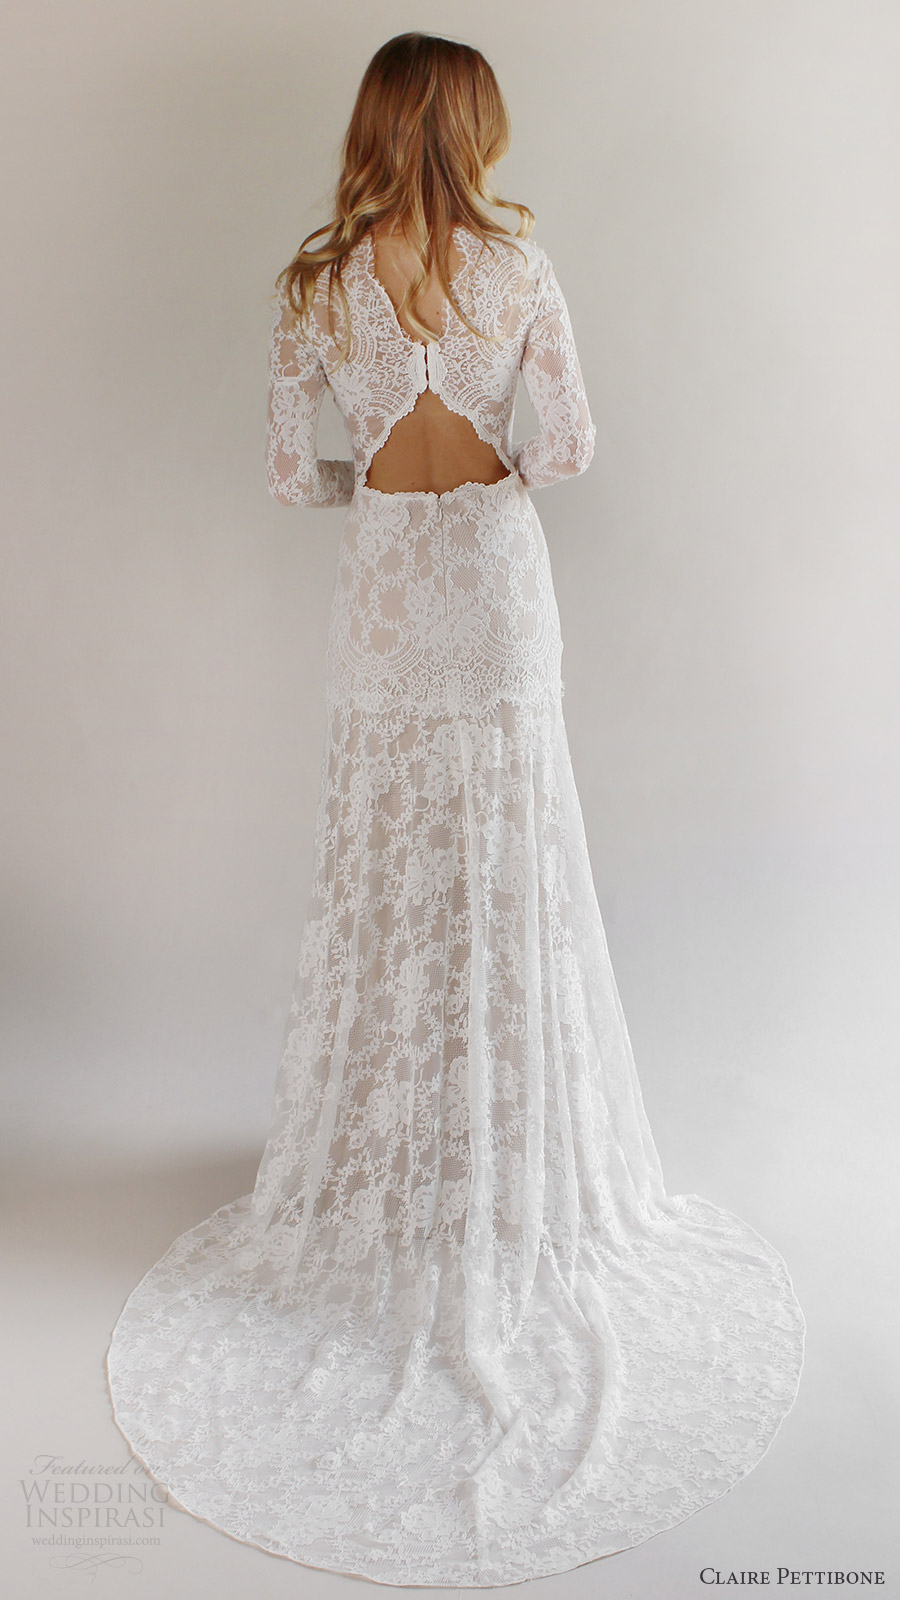 Romantique by claire pettibone spring 2017 wedding dresses for Wedding dresses with high neck and long sleeves